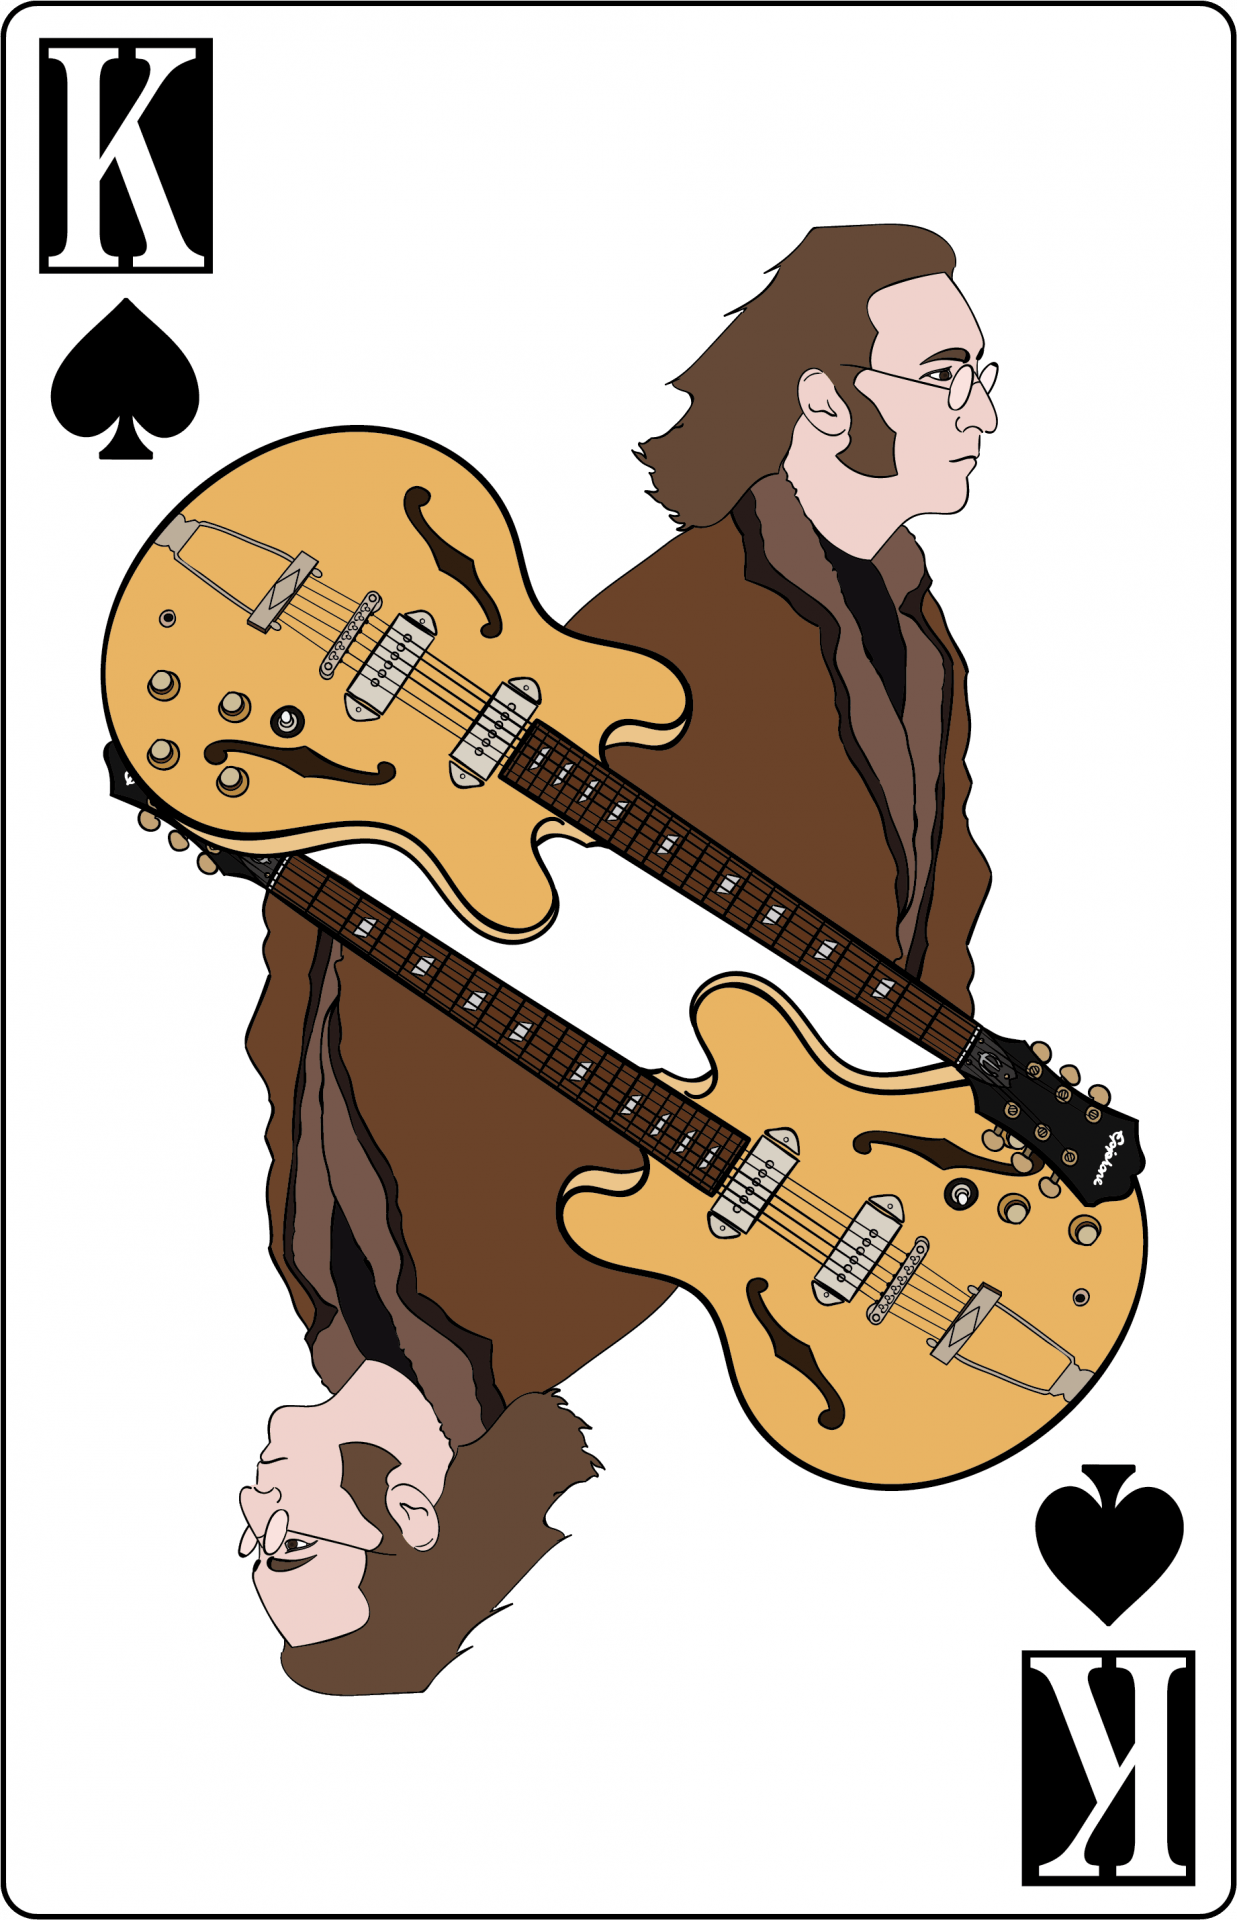 Illustration, John Lennon on a King of Spades playing card, accompanied by an Epiphone Casino guitar